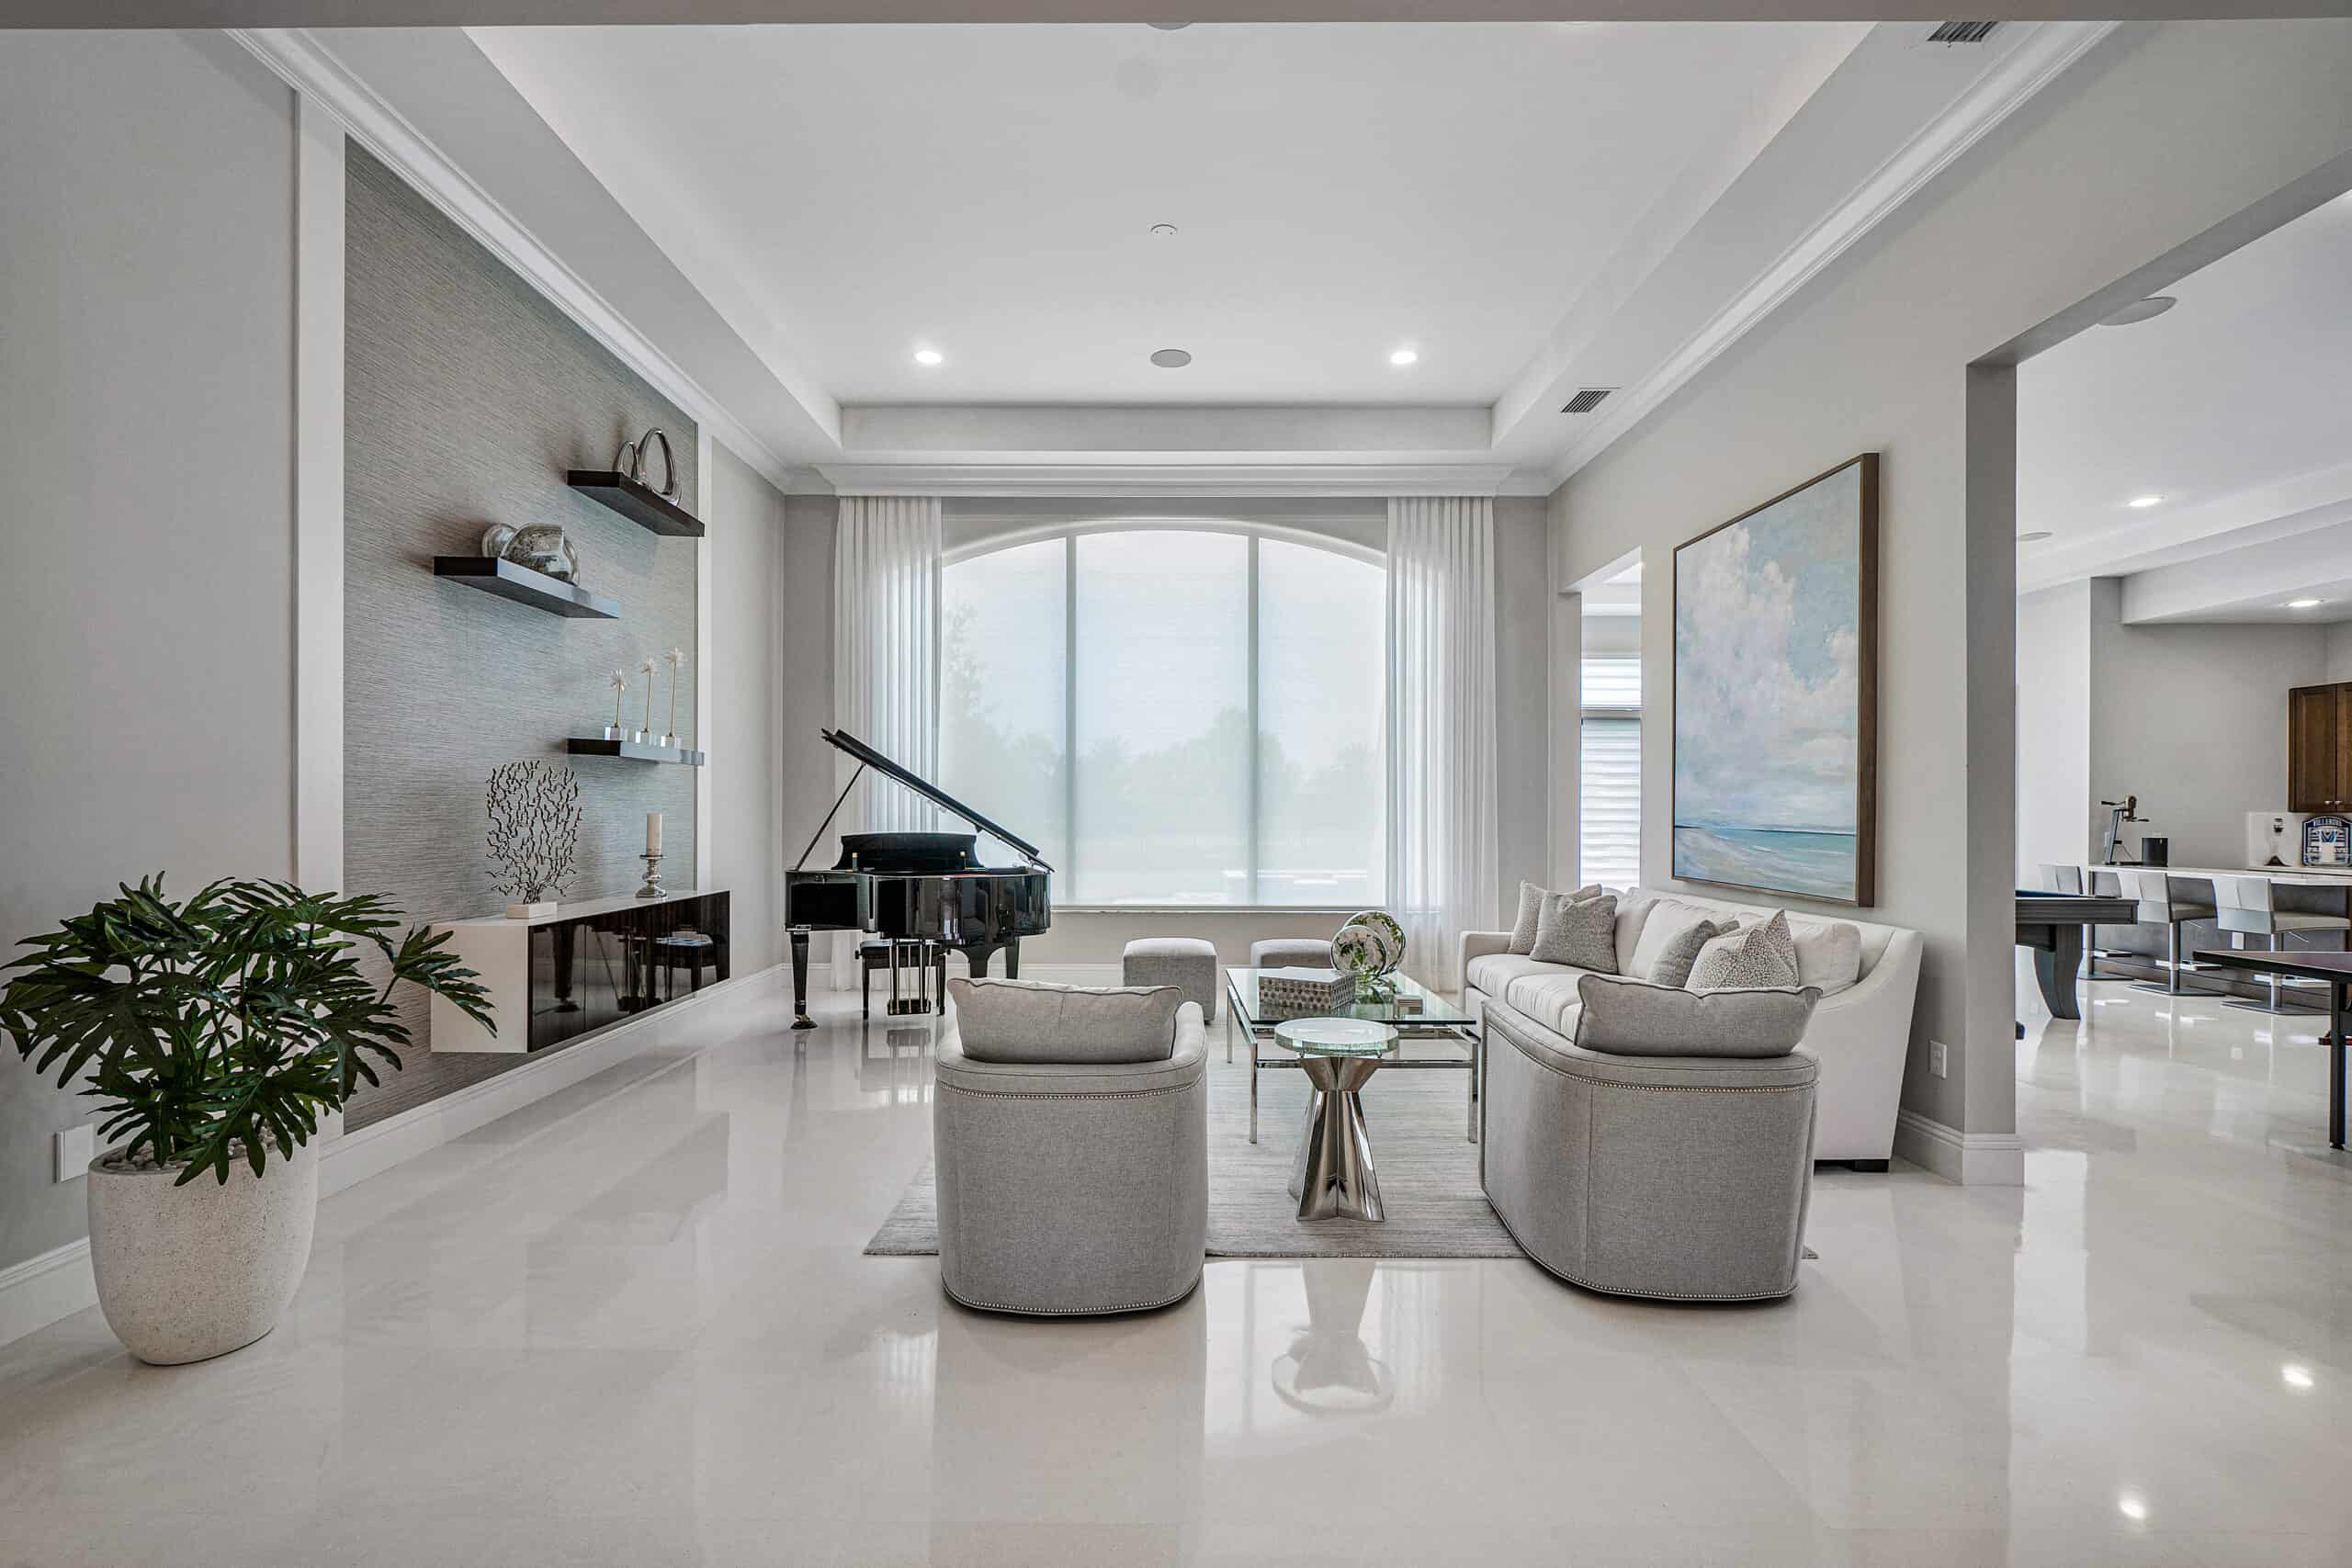 transitional living room designed by Interiors by Brown